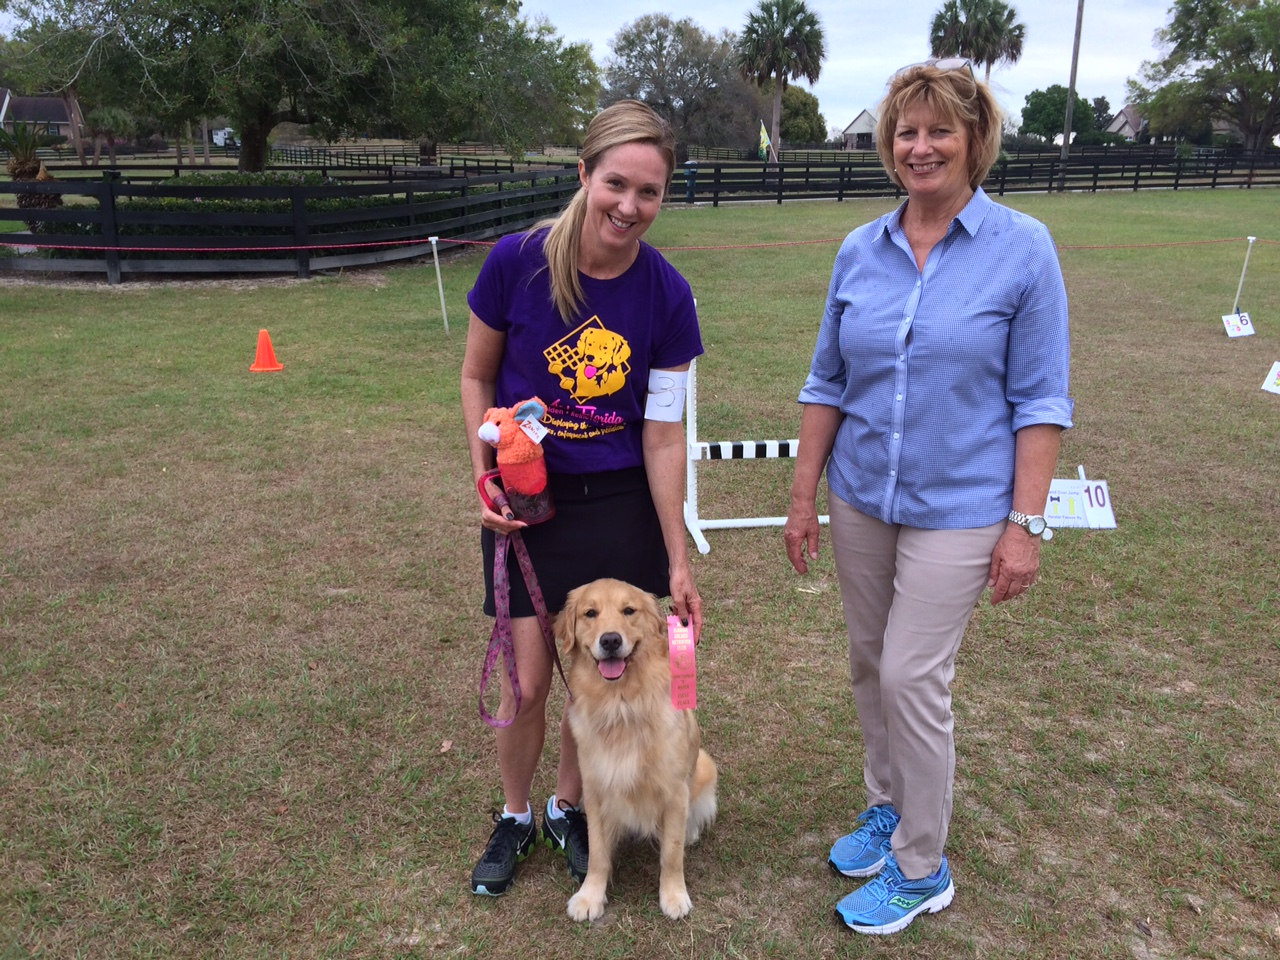 Michele Throm with her Golden Retriever Bella (Magik's Emerald Belle Of The Ball). Judge Ellen Barktus (right).